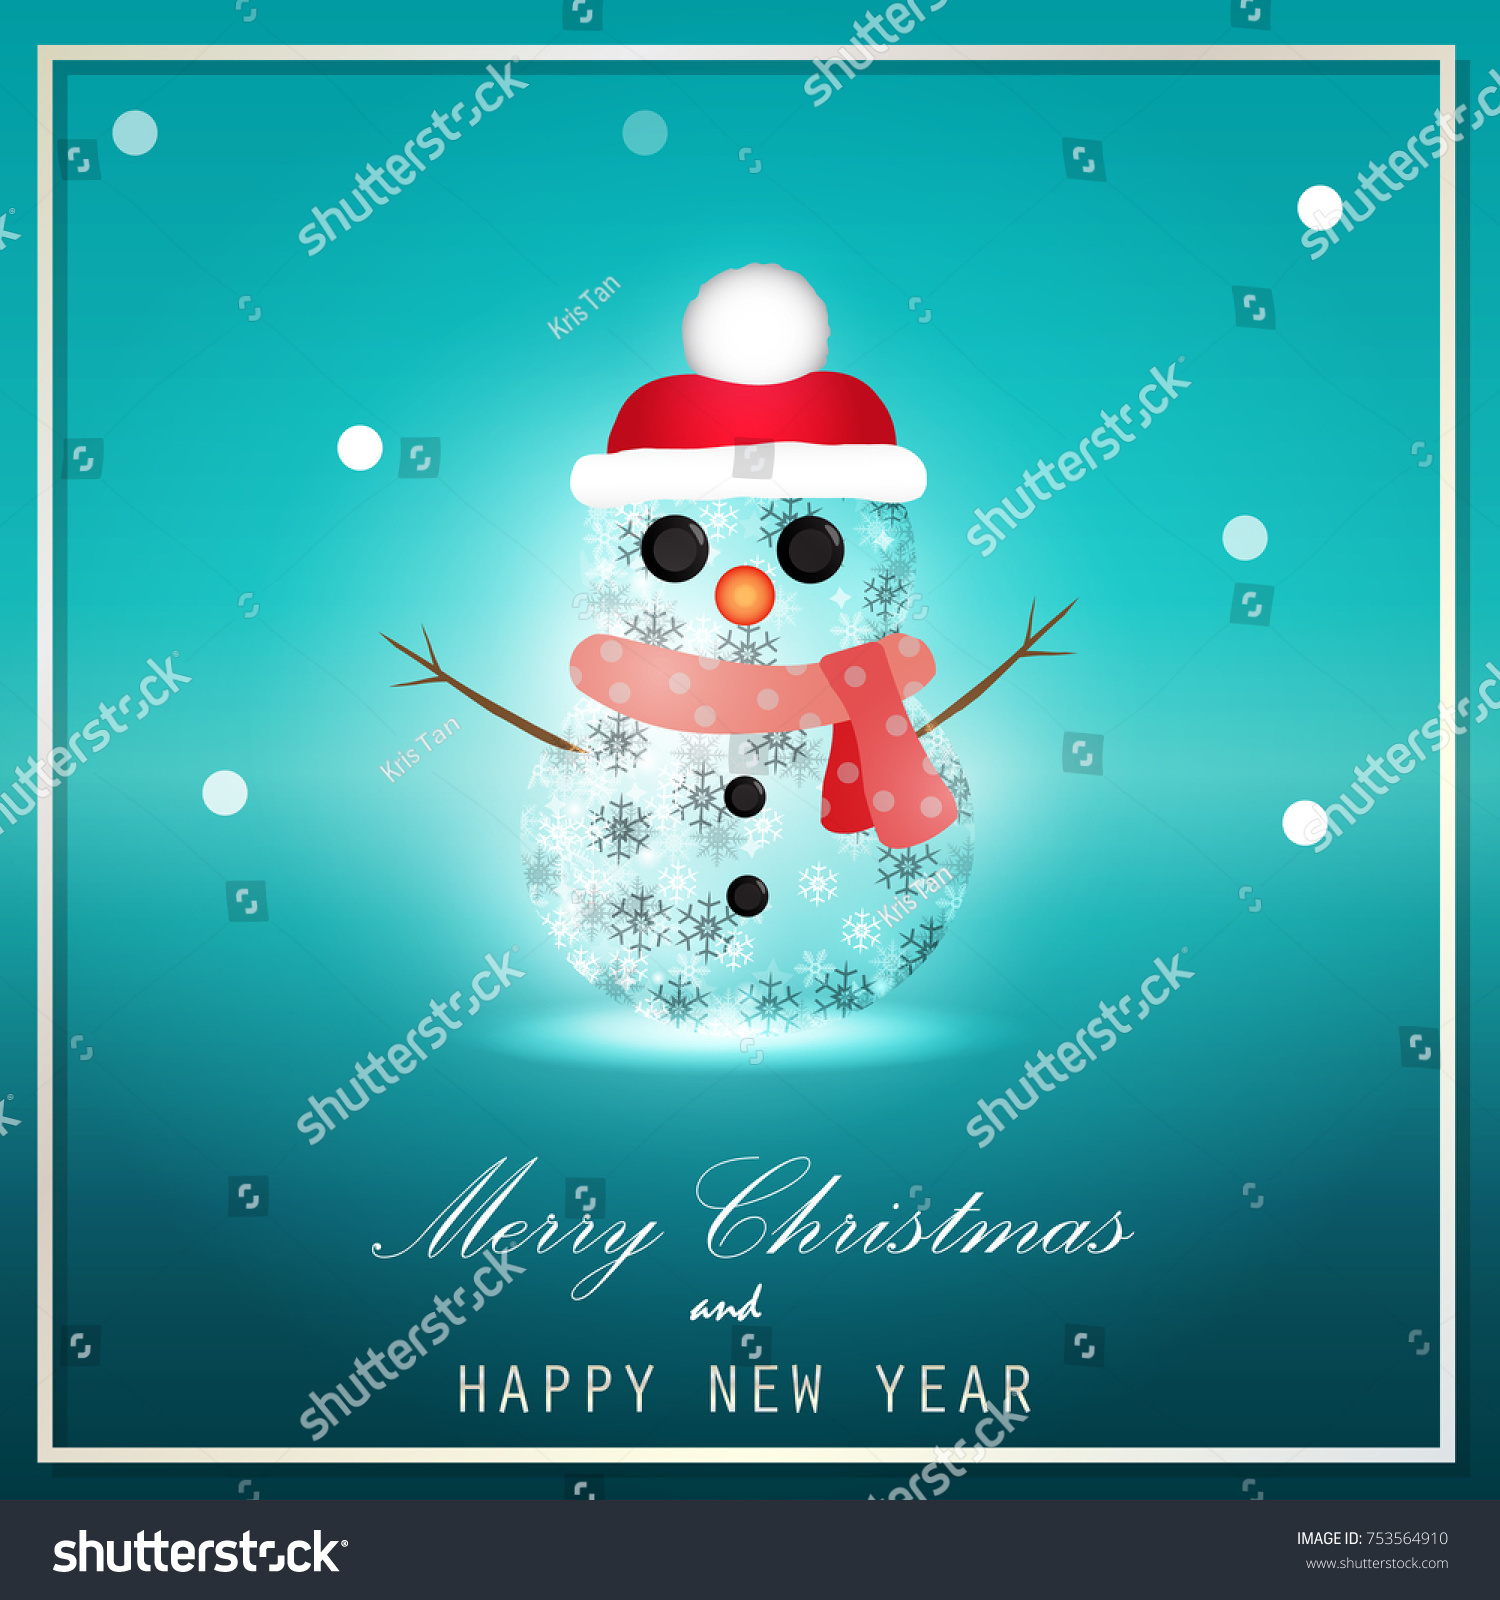 merry christmas and happy new year greeting card background vector design of snowman and decoration